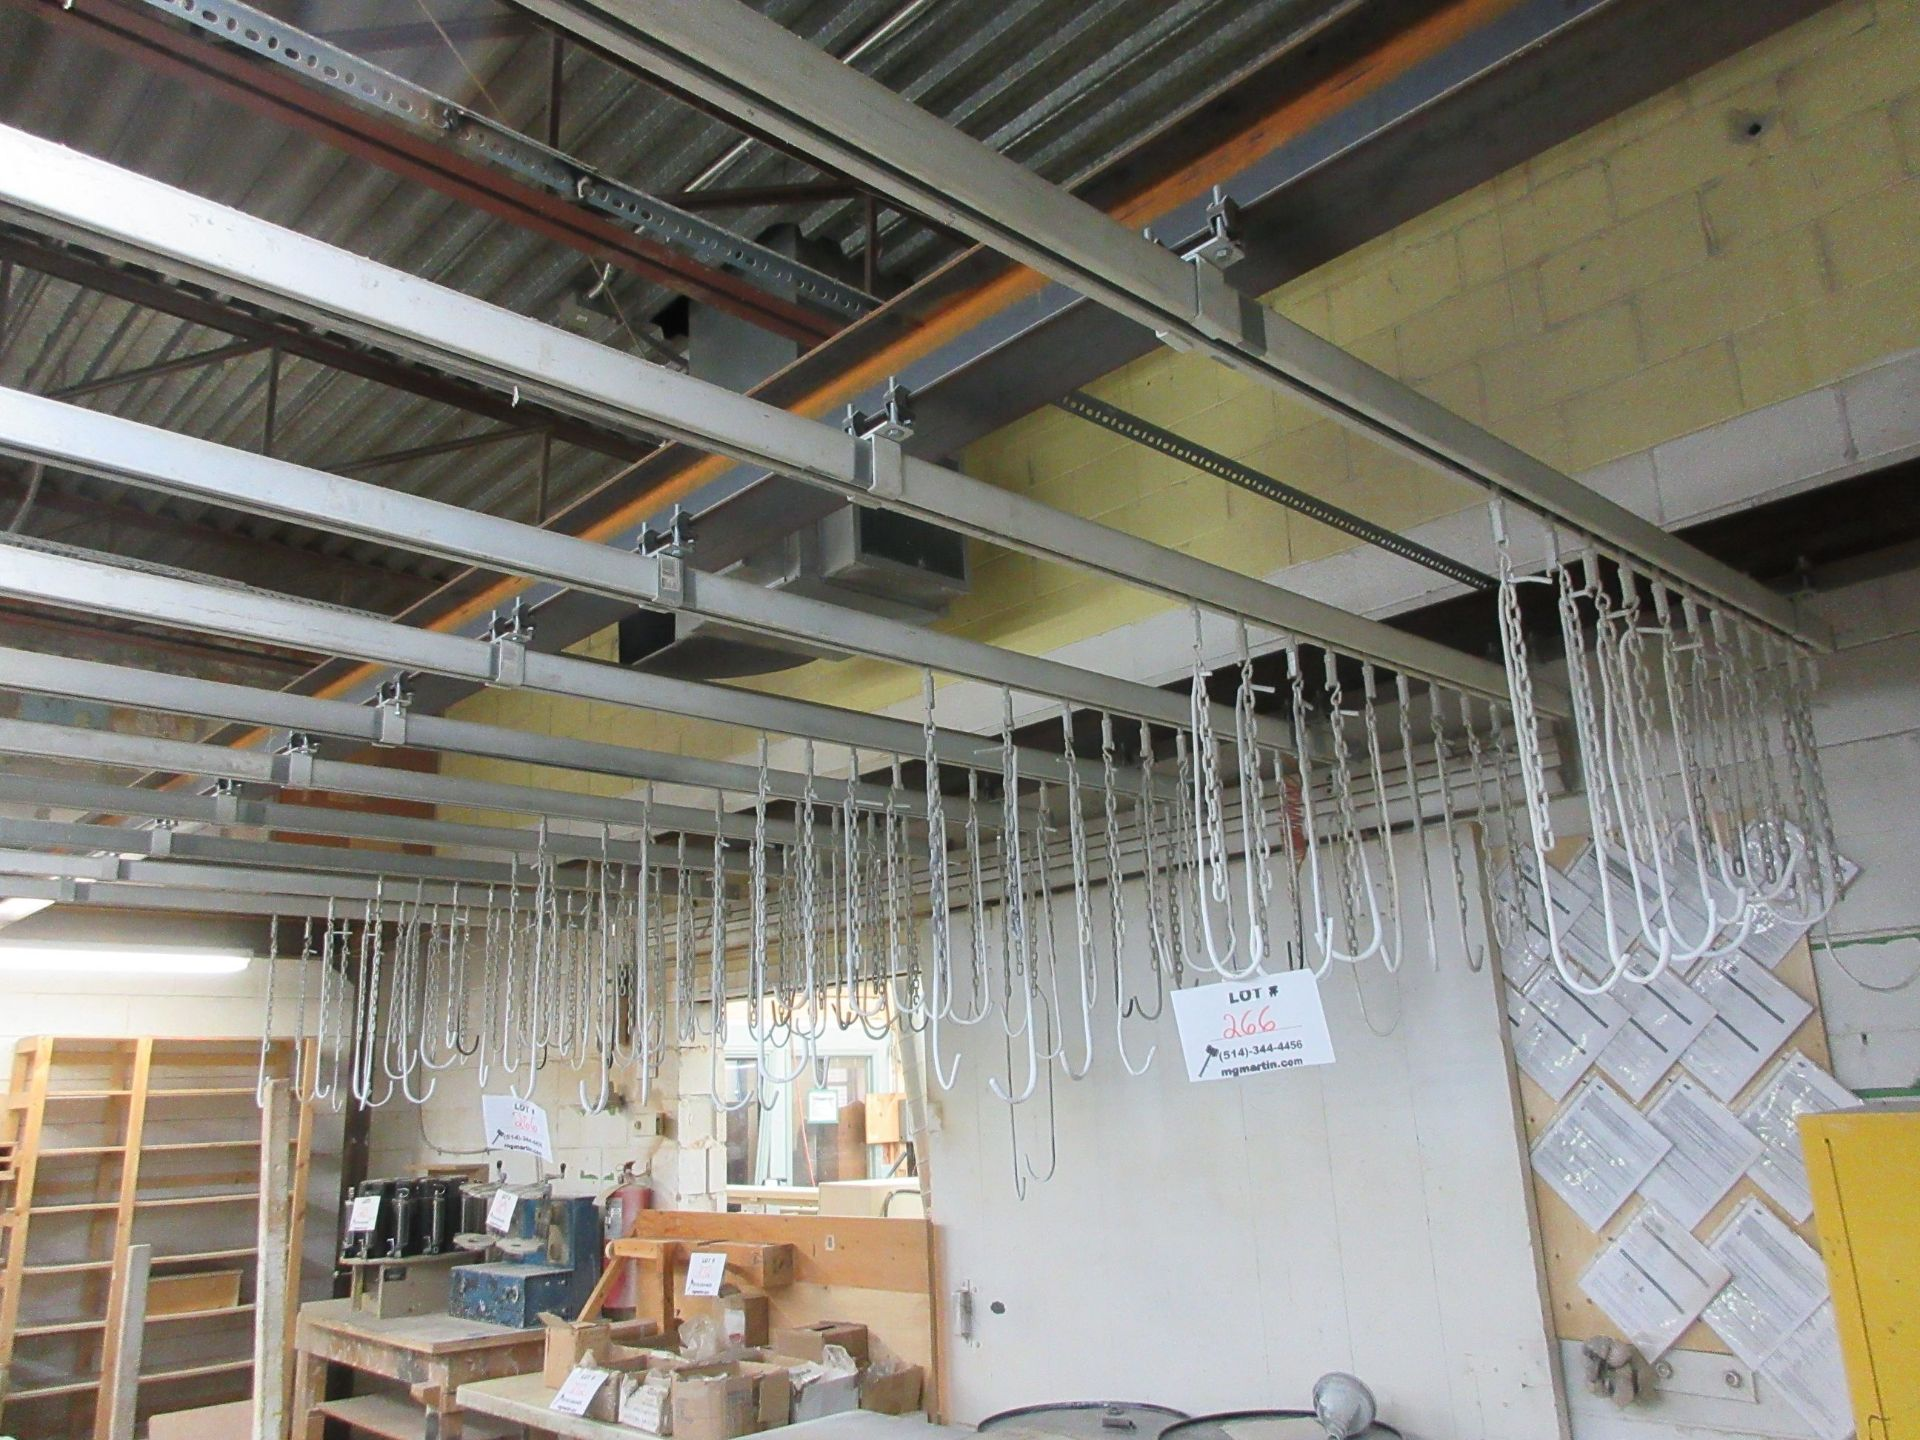 Lot 266 - LOT including suspending rails (for painting) c/w aprox 100 hooks (rails 10 x 30 ft aprox)